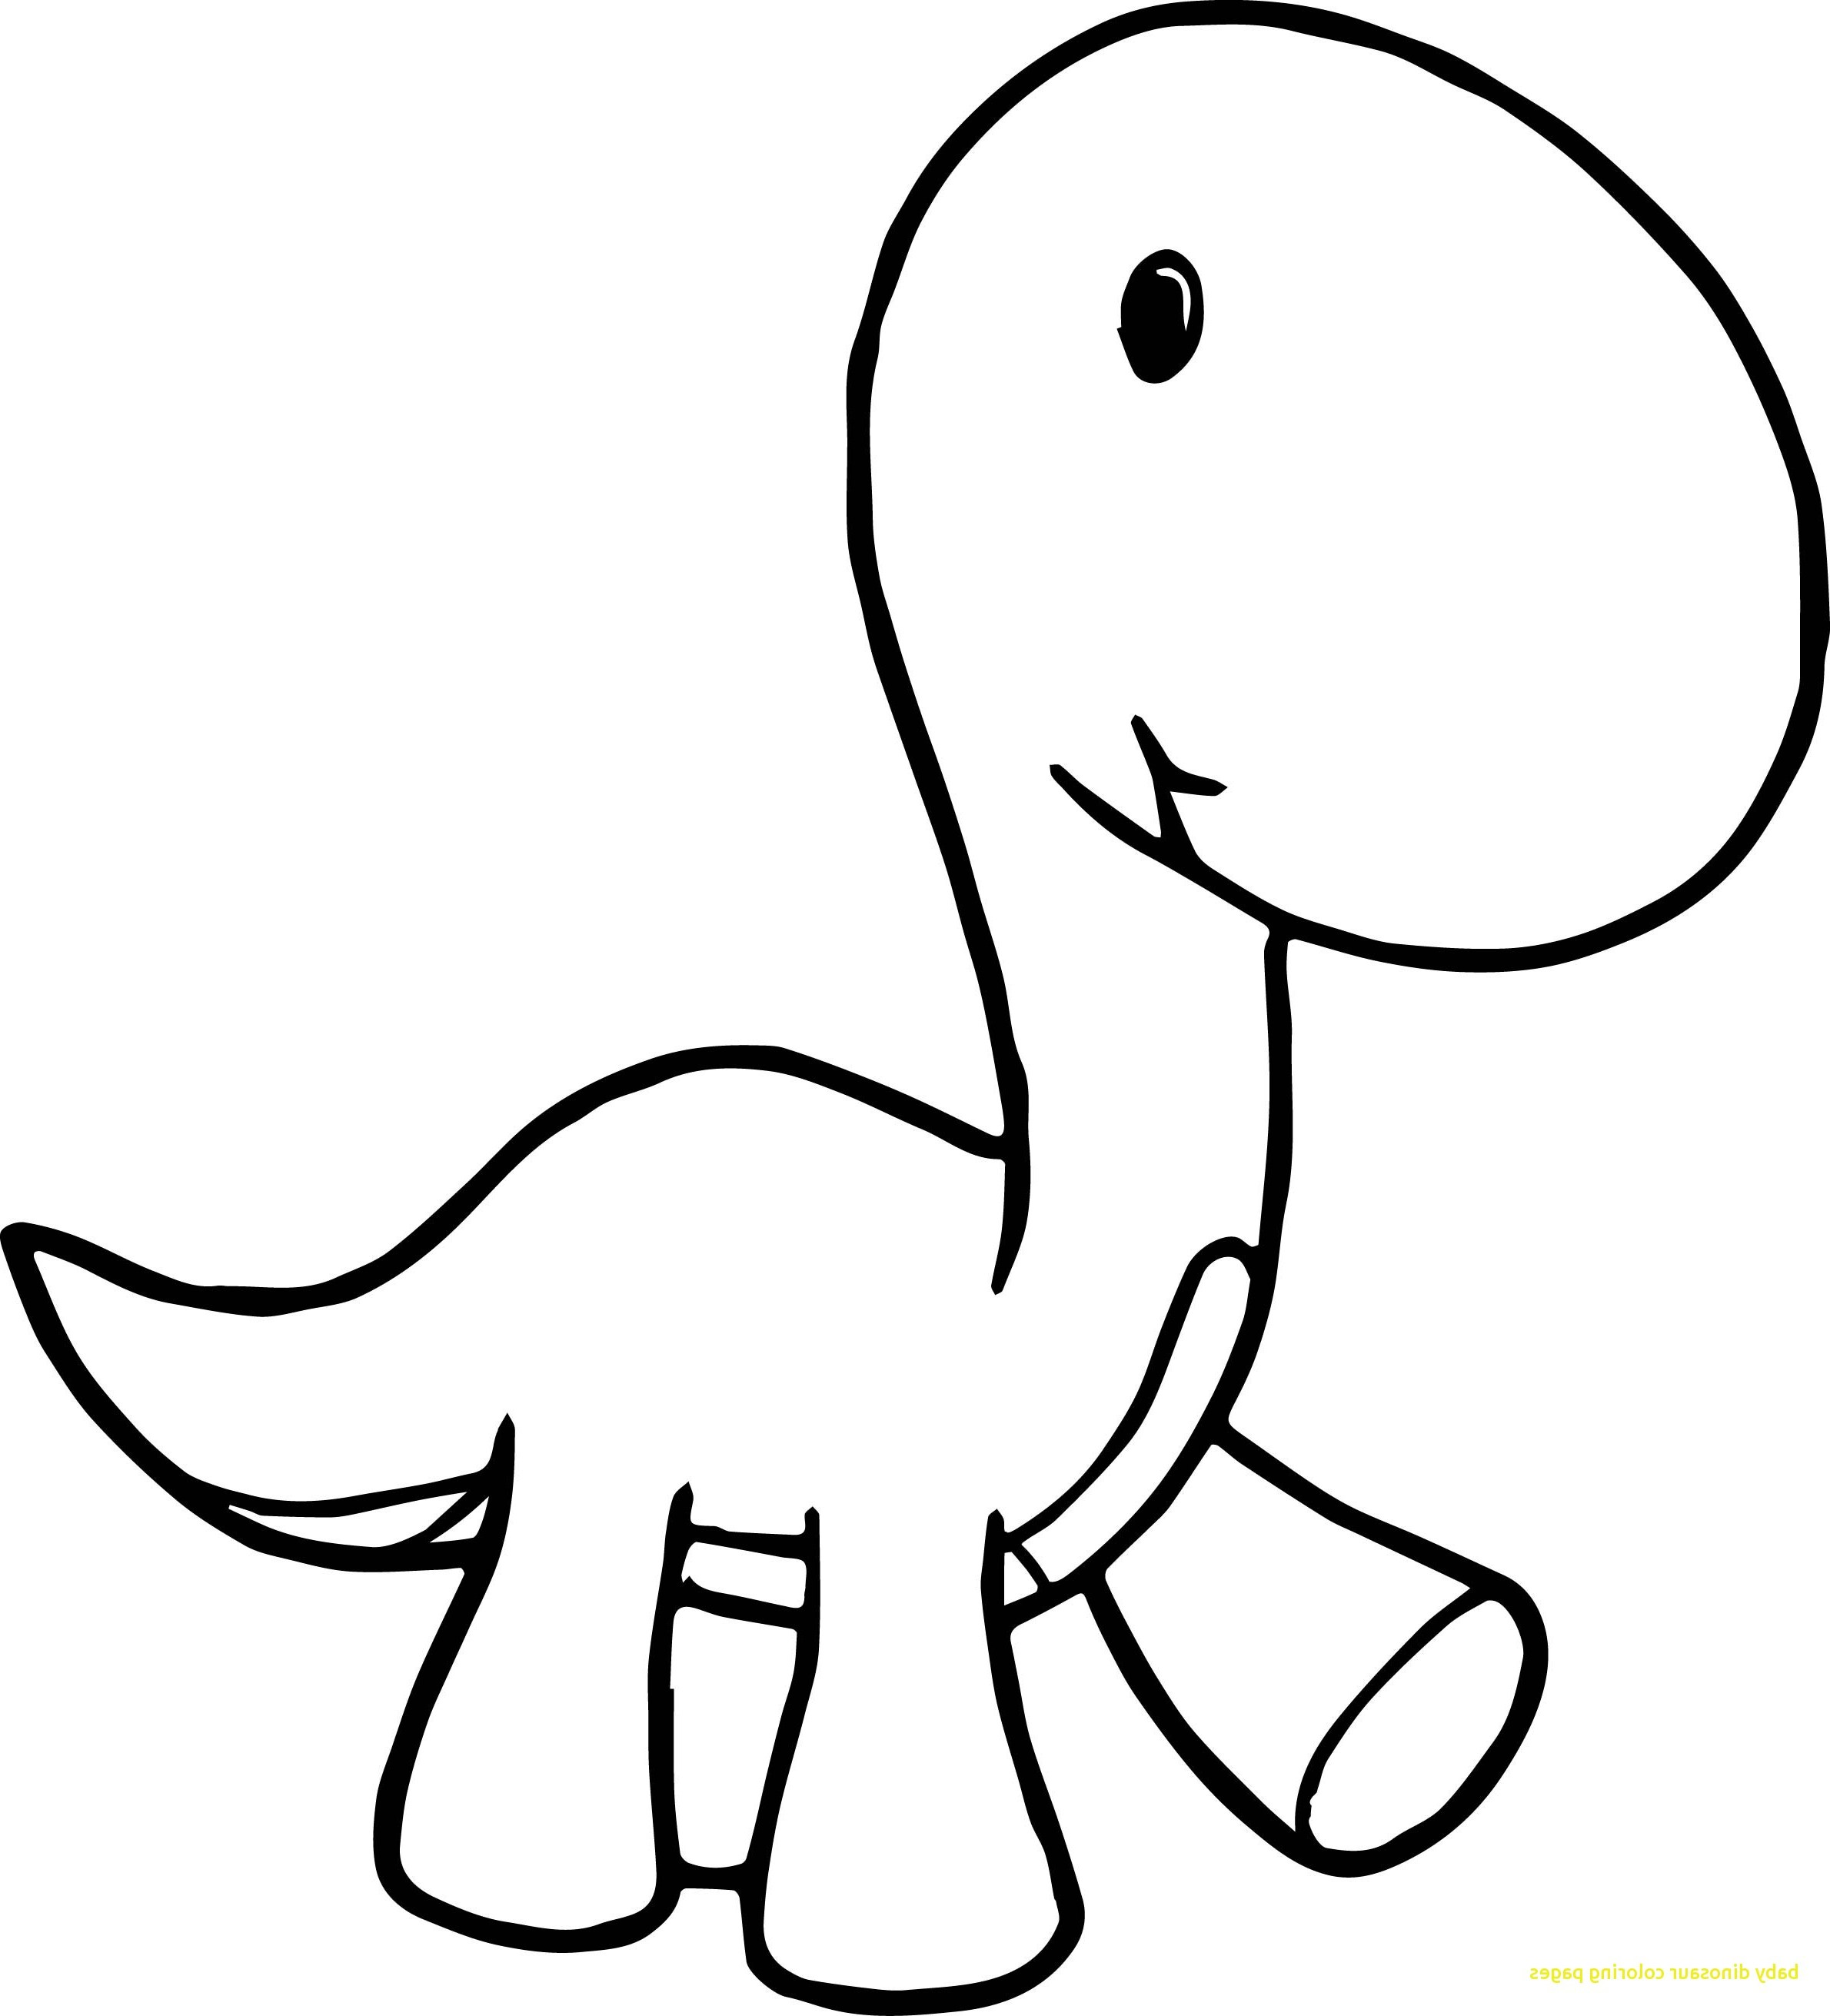 2380x2622 Dinosaur Skeleton Drawing Easy Step